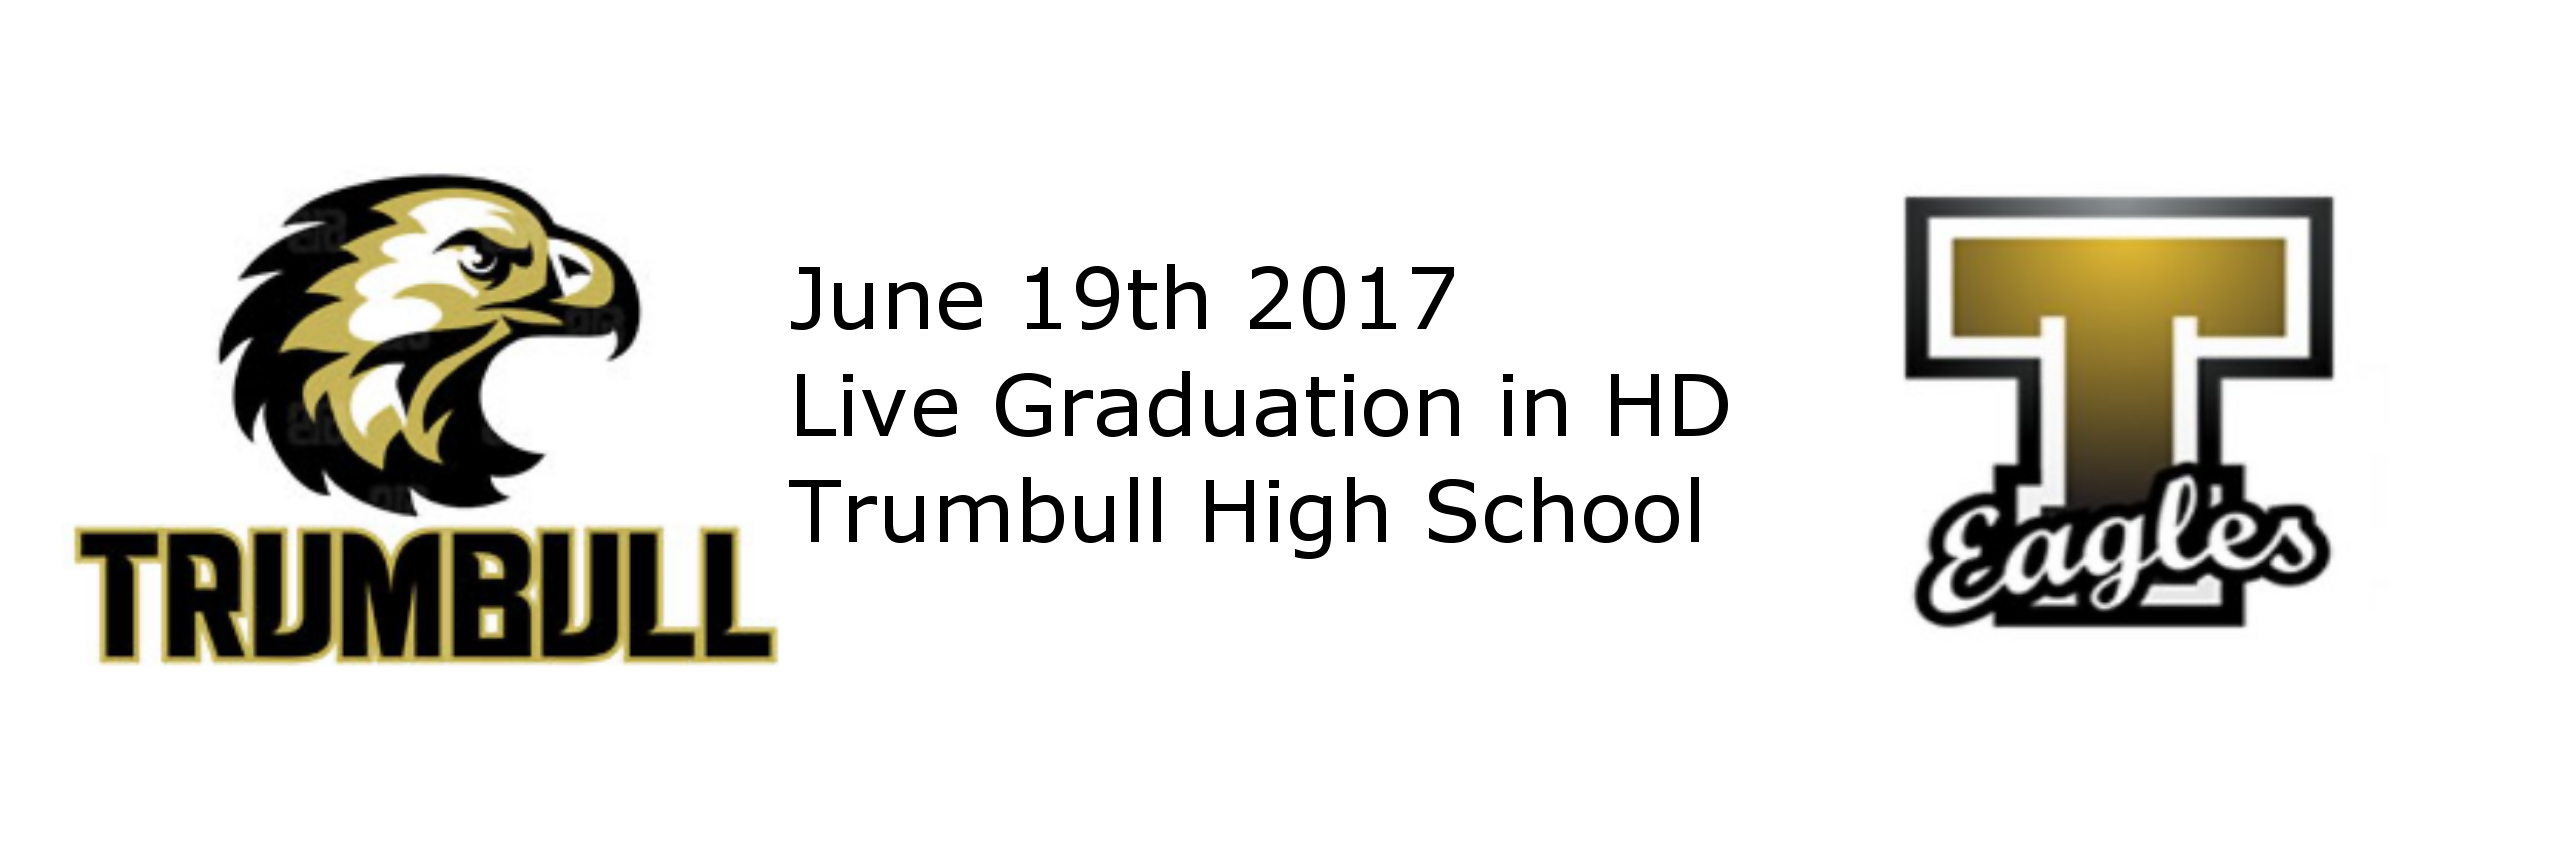 Trumbull High School Graduation Live in HD